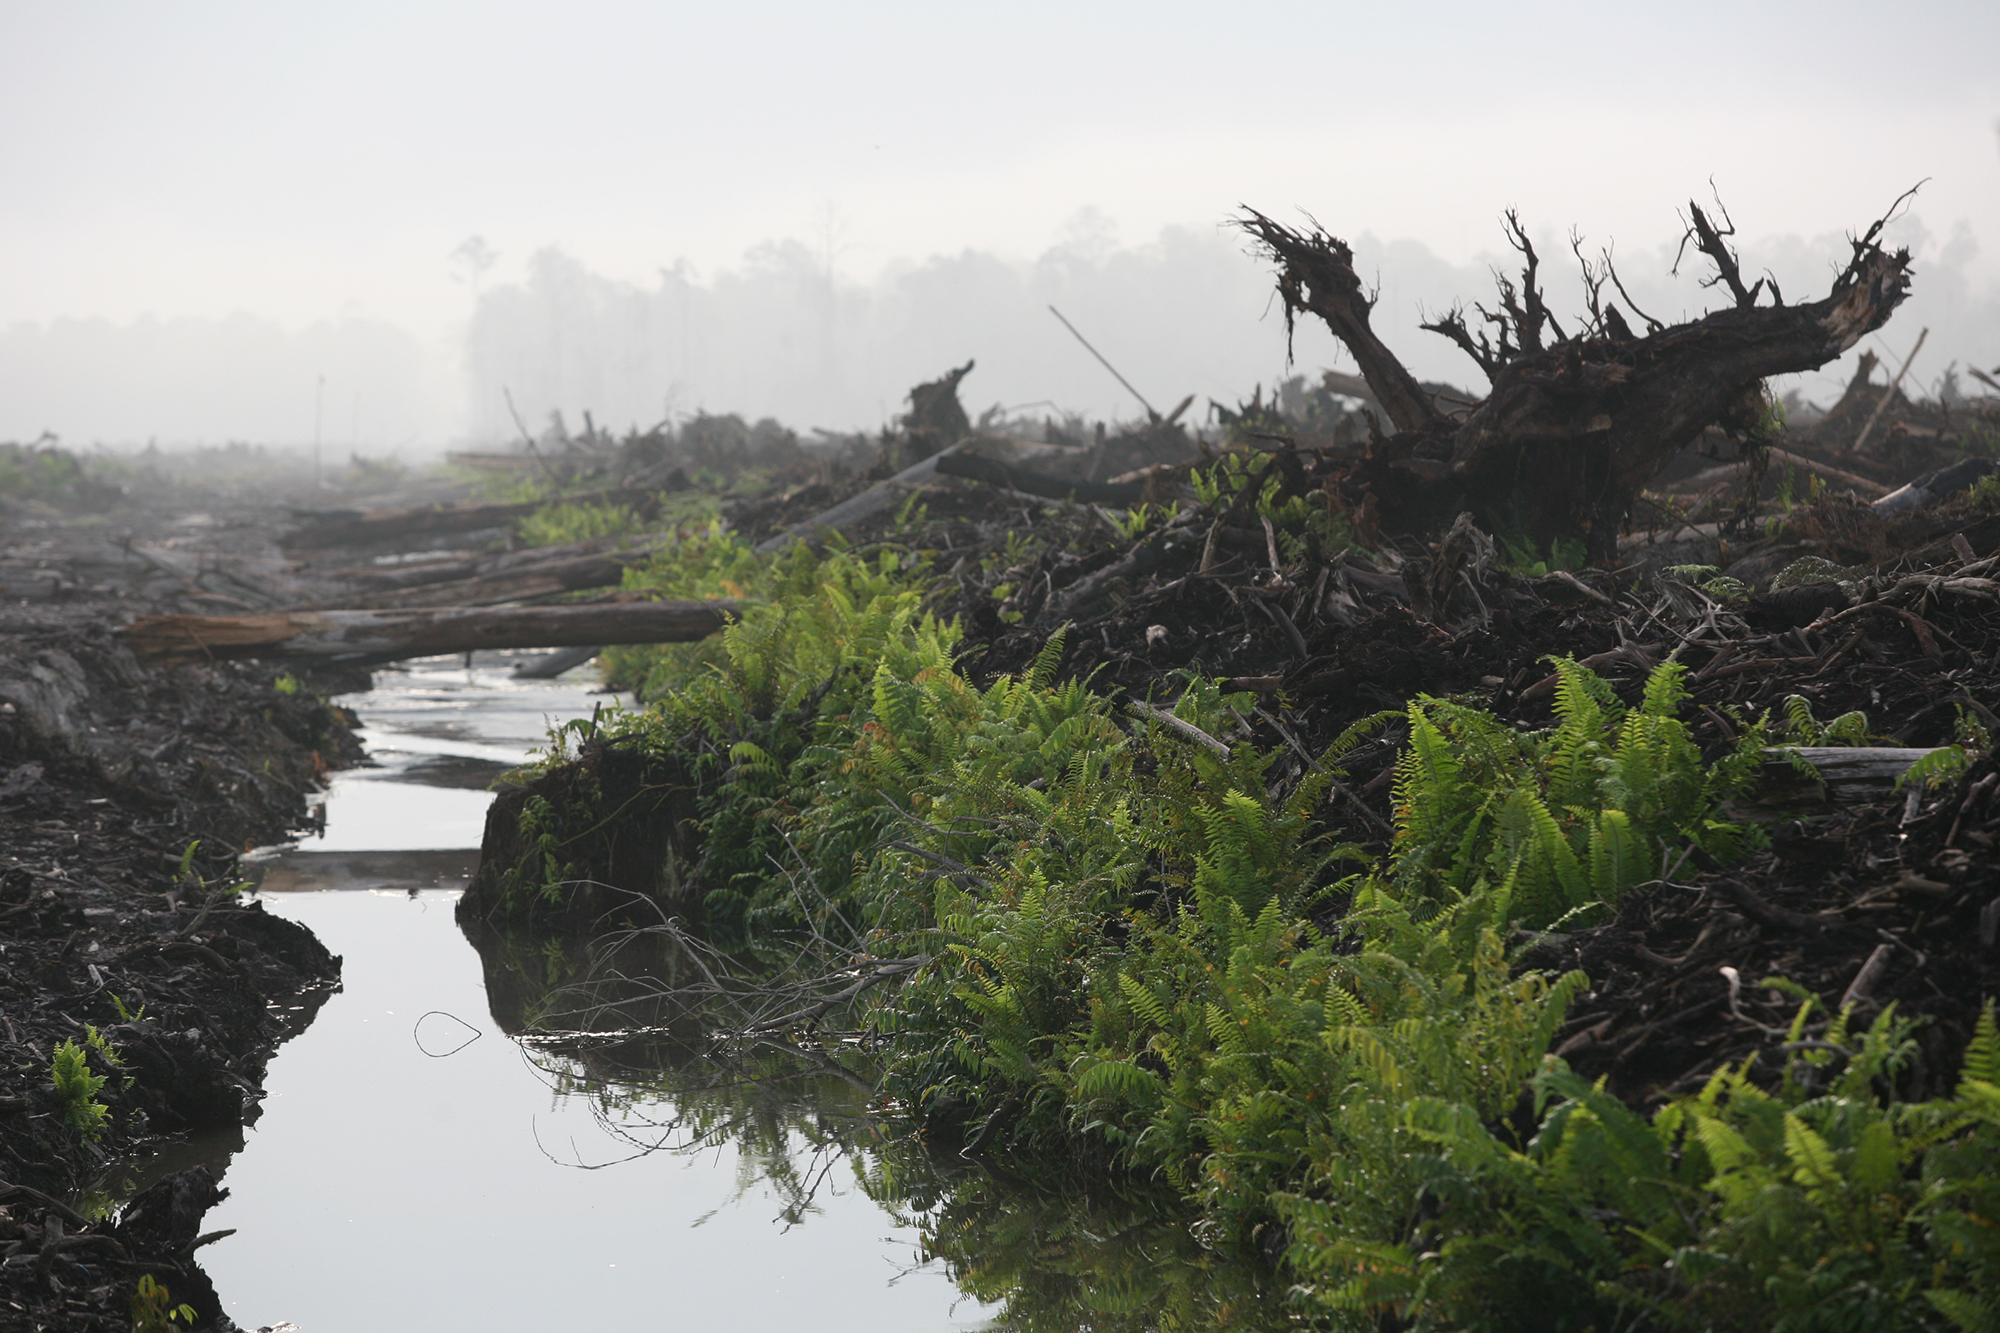 A canal draining peatland for palm oil plantations on the Indonesian island of Sumatra